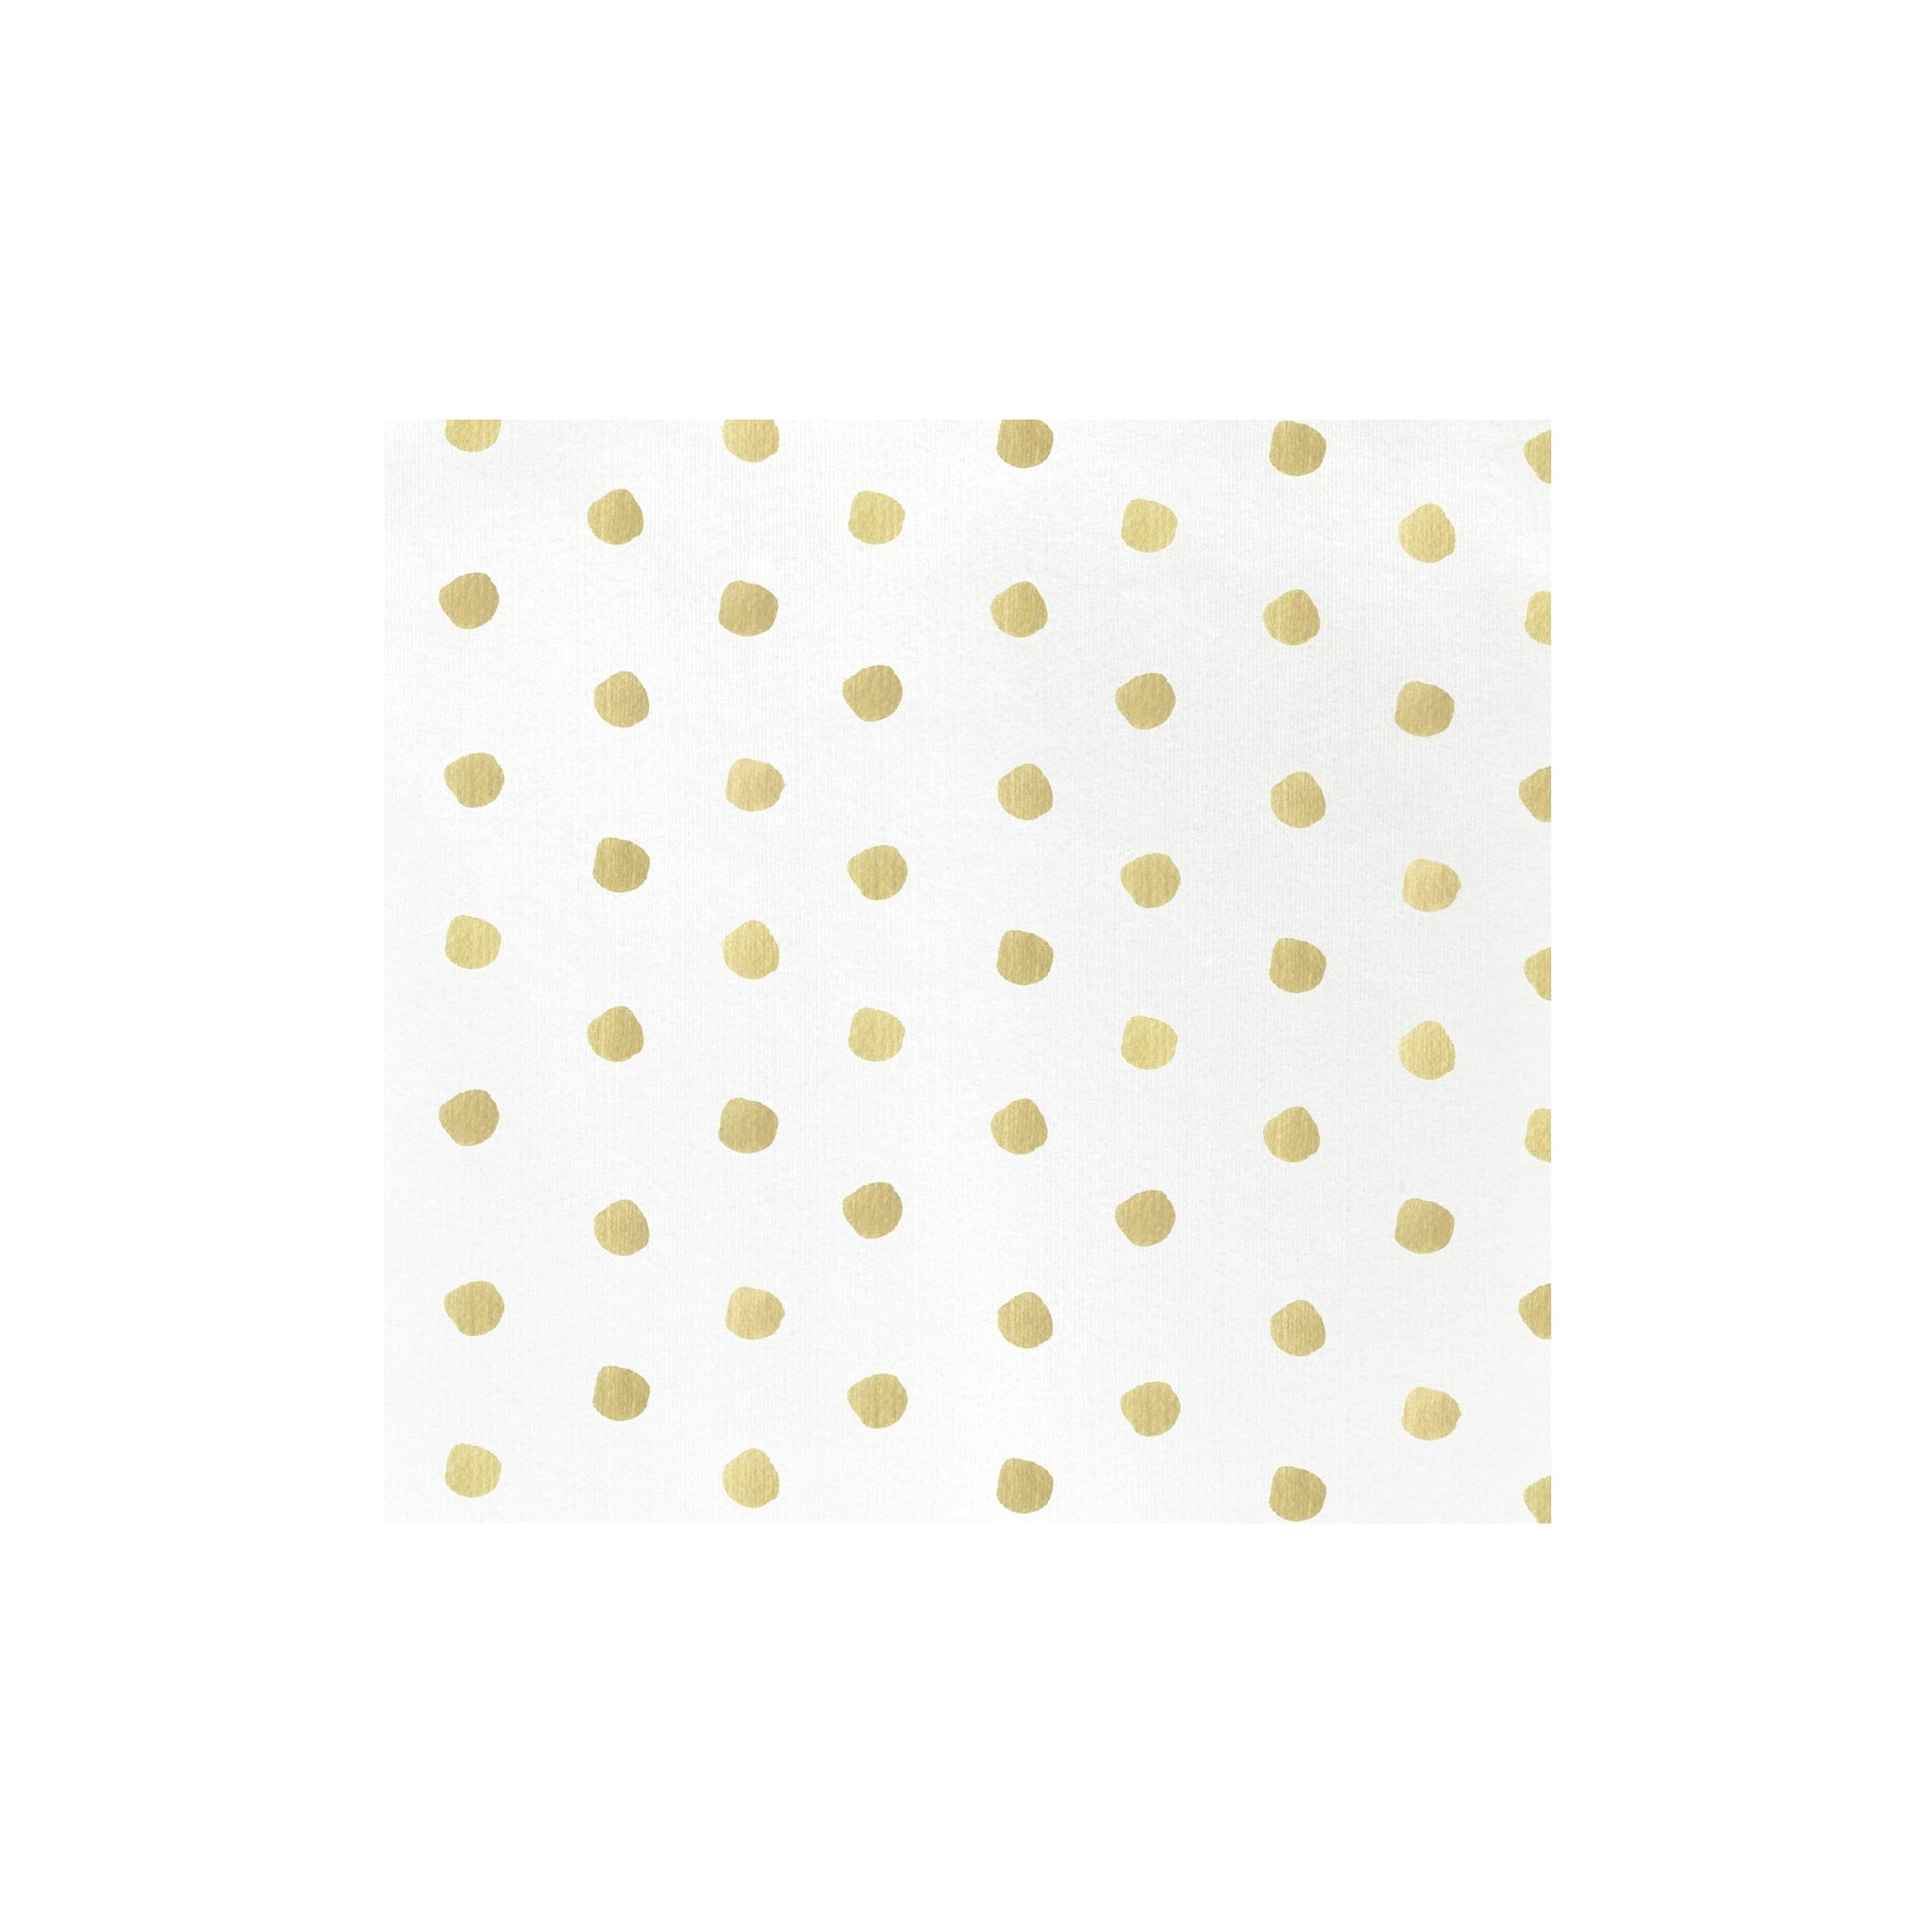 Papersoft Napkins Yellow Dot Dinner Napkins (Pack of 20)